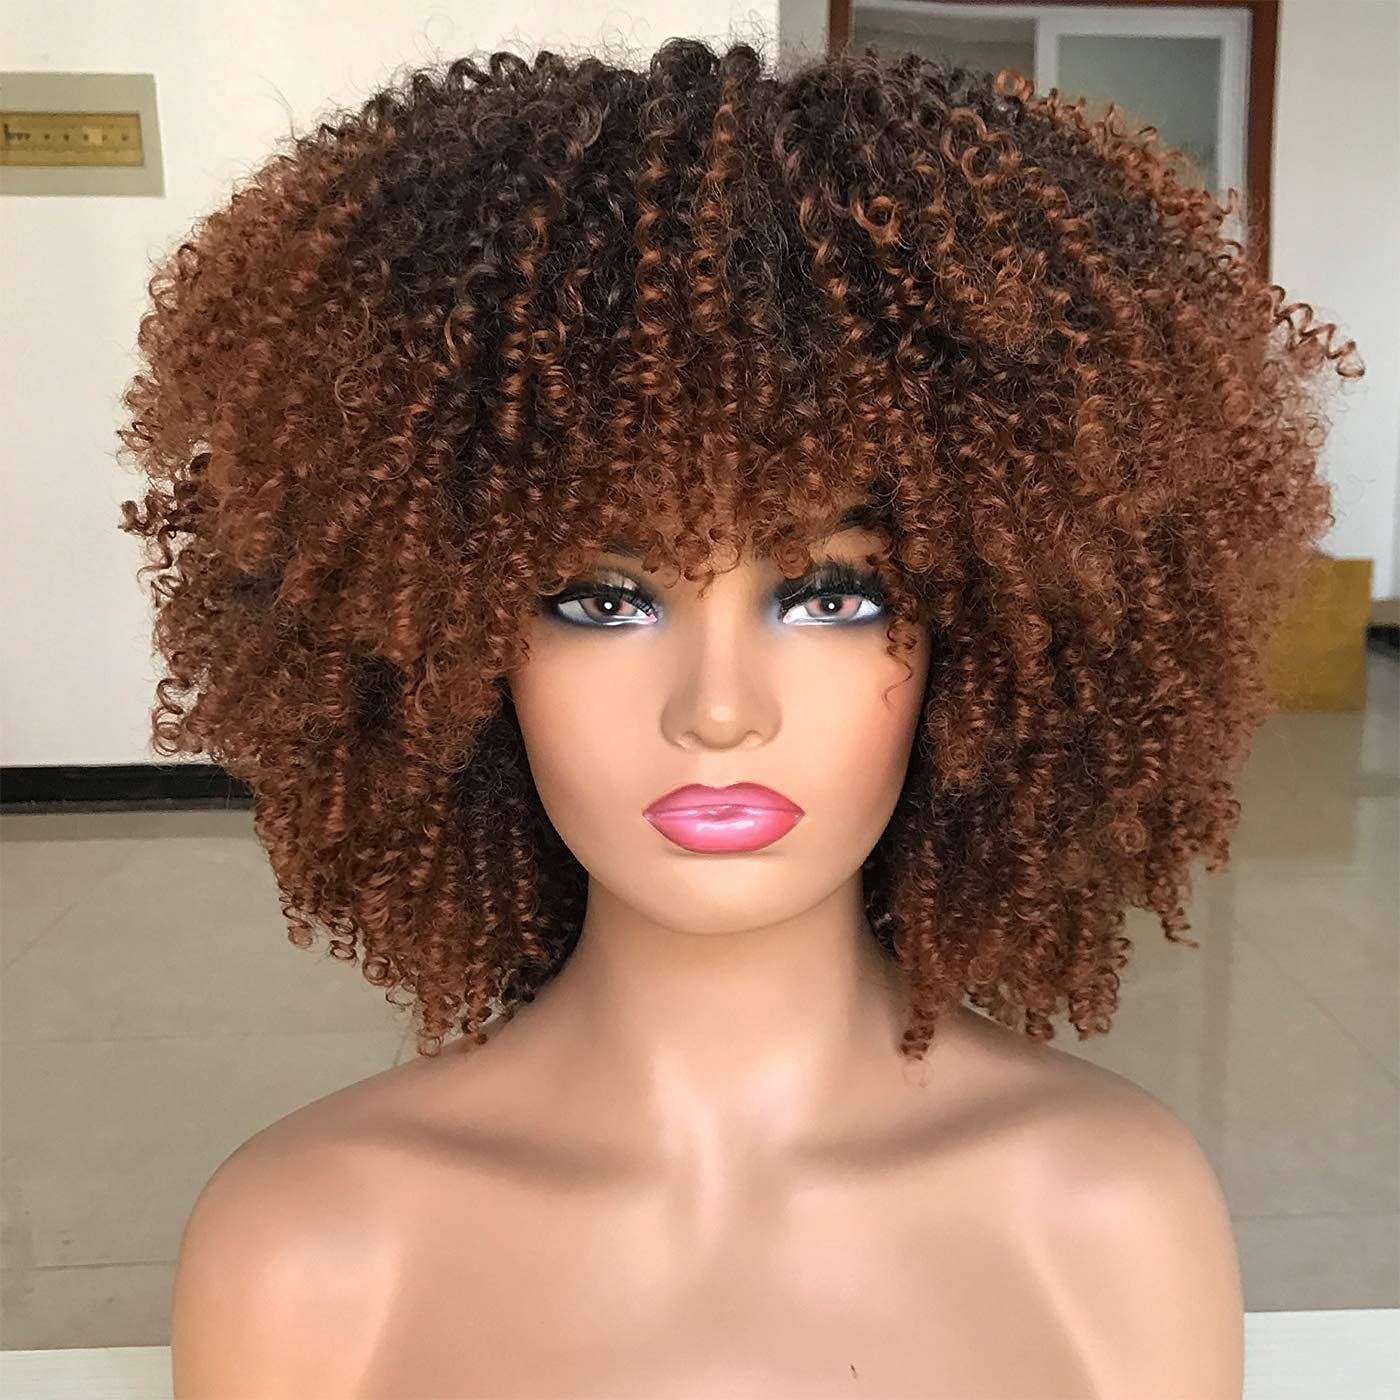 Award-winning store ANNISOUL Afro Bomb Easy-to-use Curly Wigs for Short Women Black Kinky C